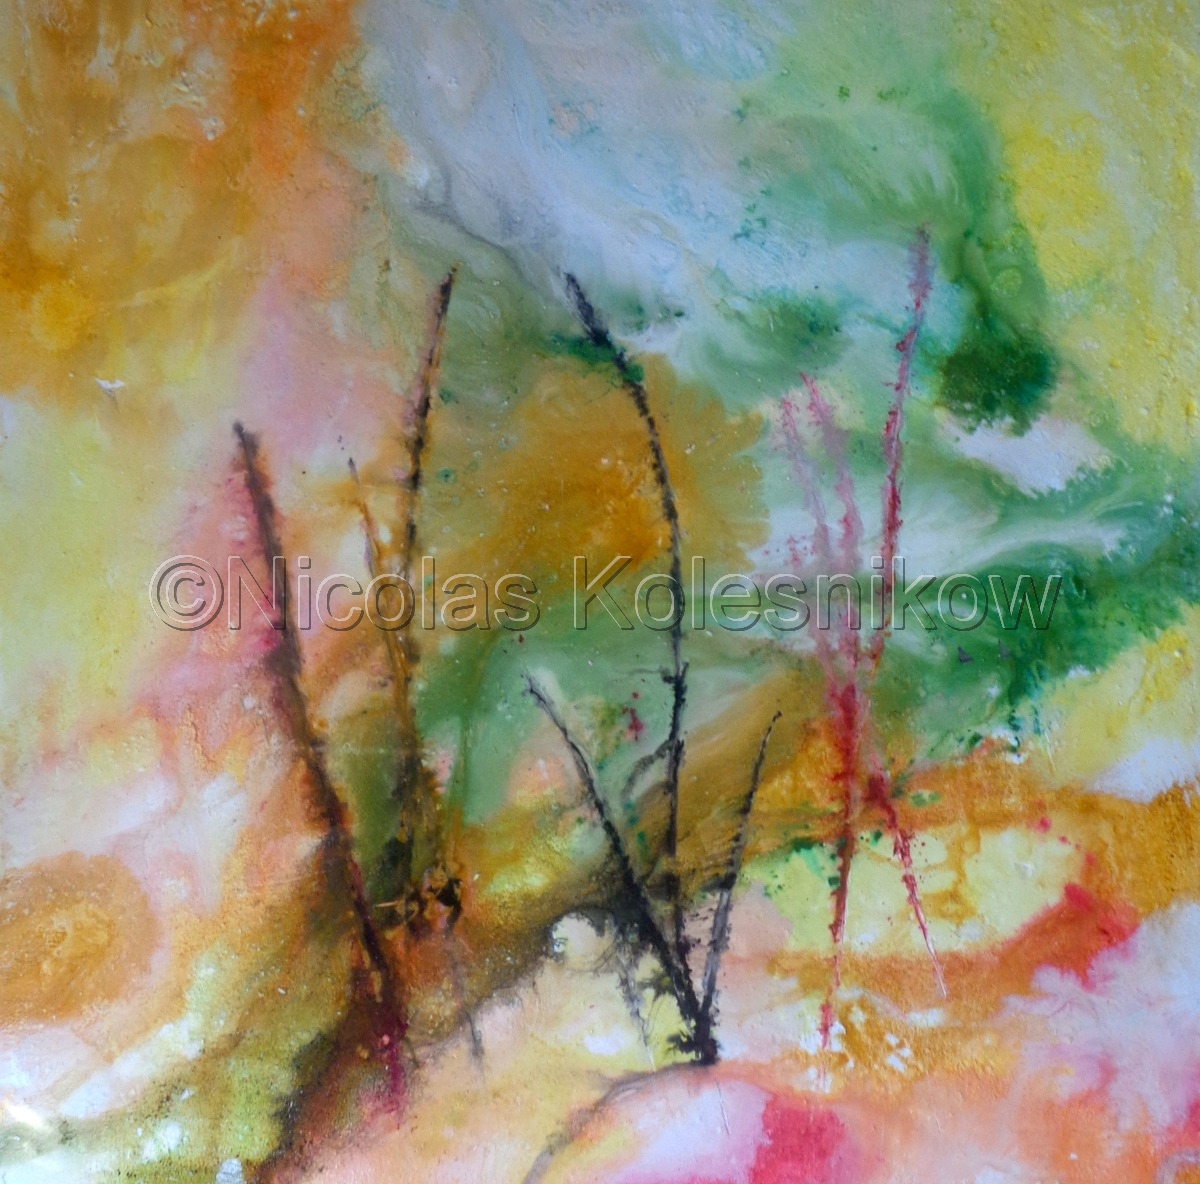 Abstract painting. Pigments and plaster. Soft pastel effect. (large view)